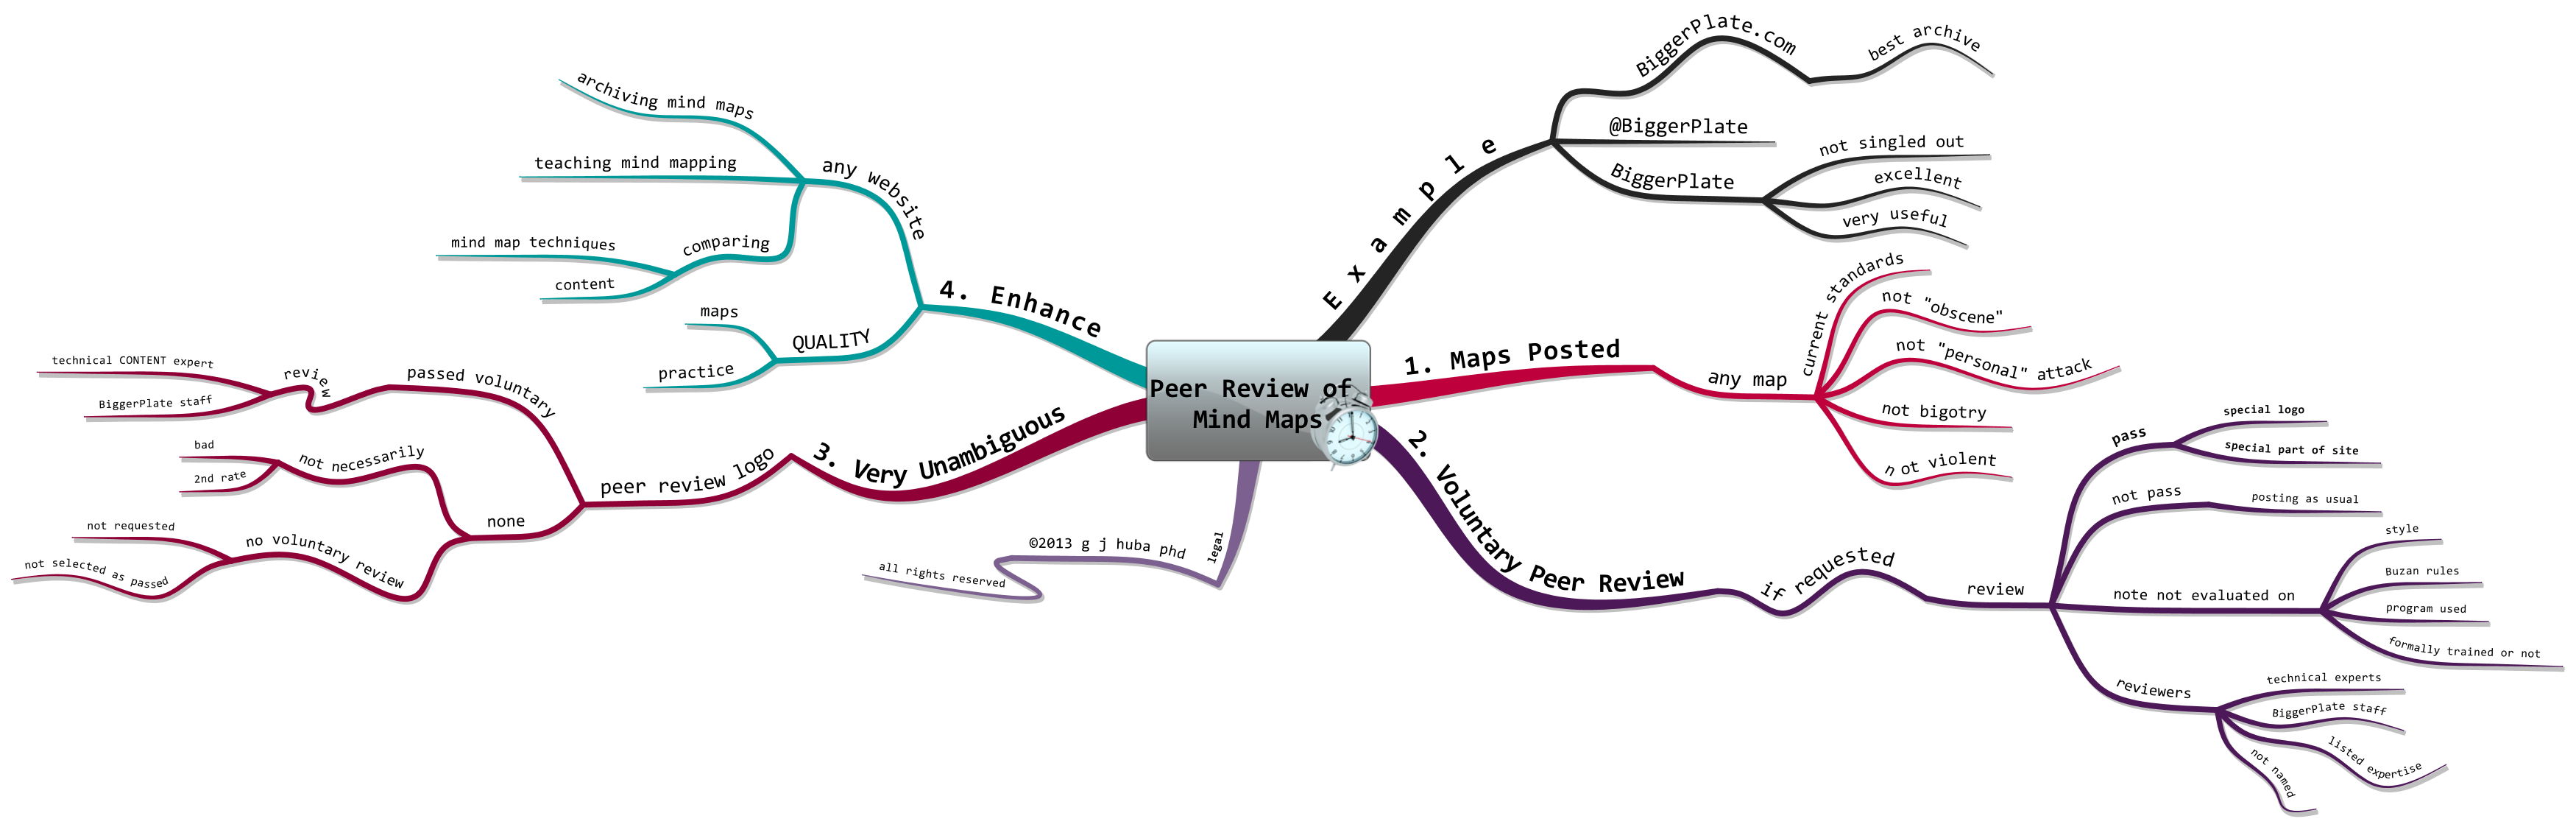 Plan Peer Review of Mind Maps